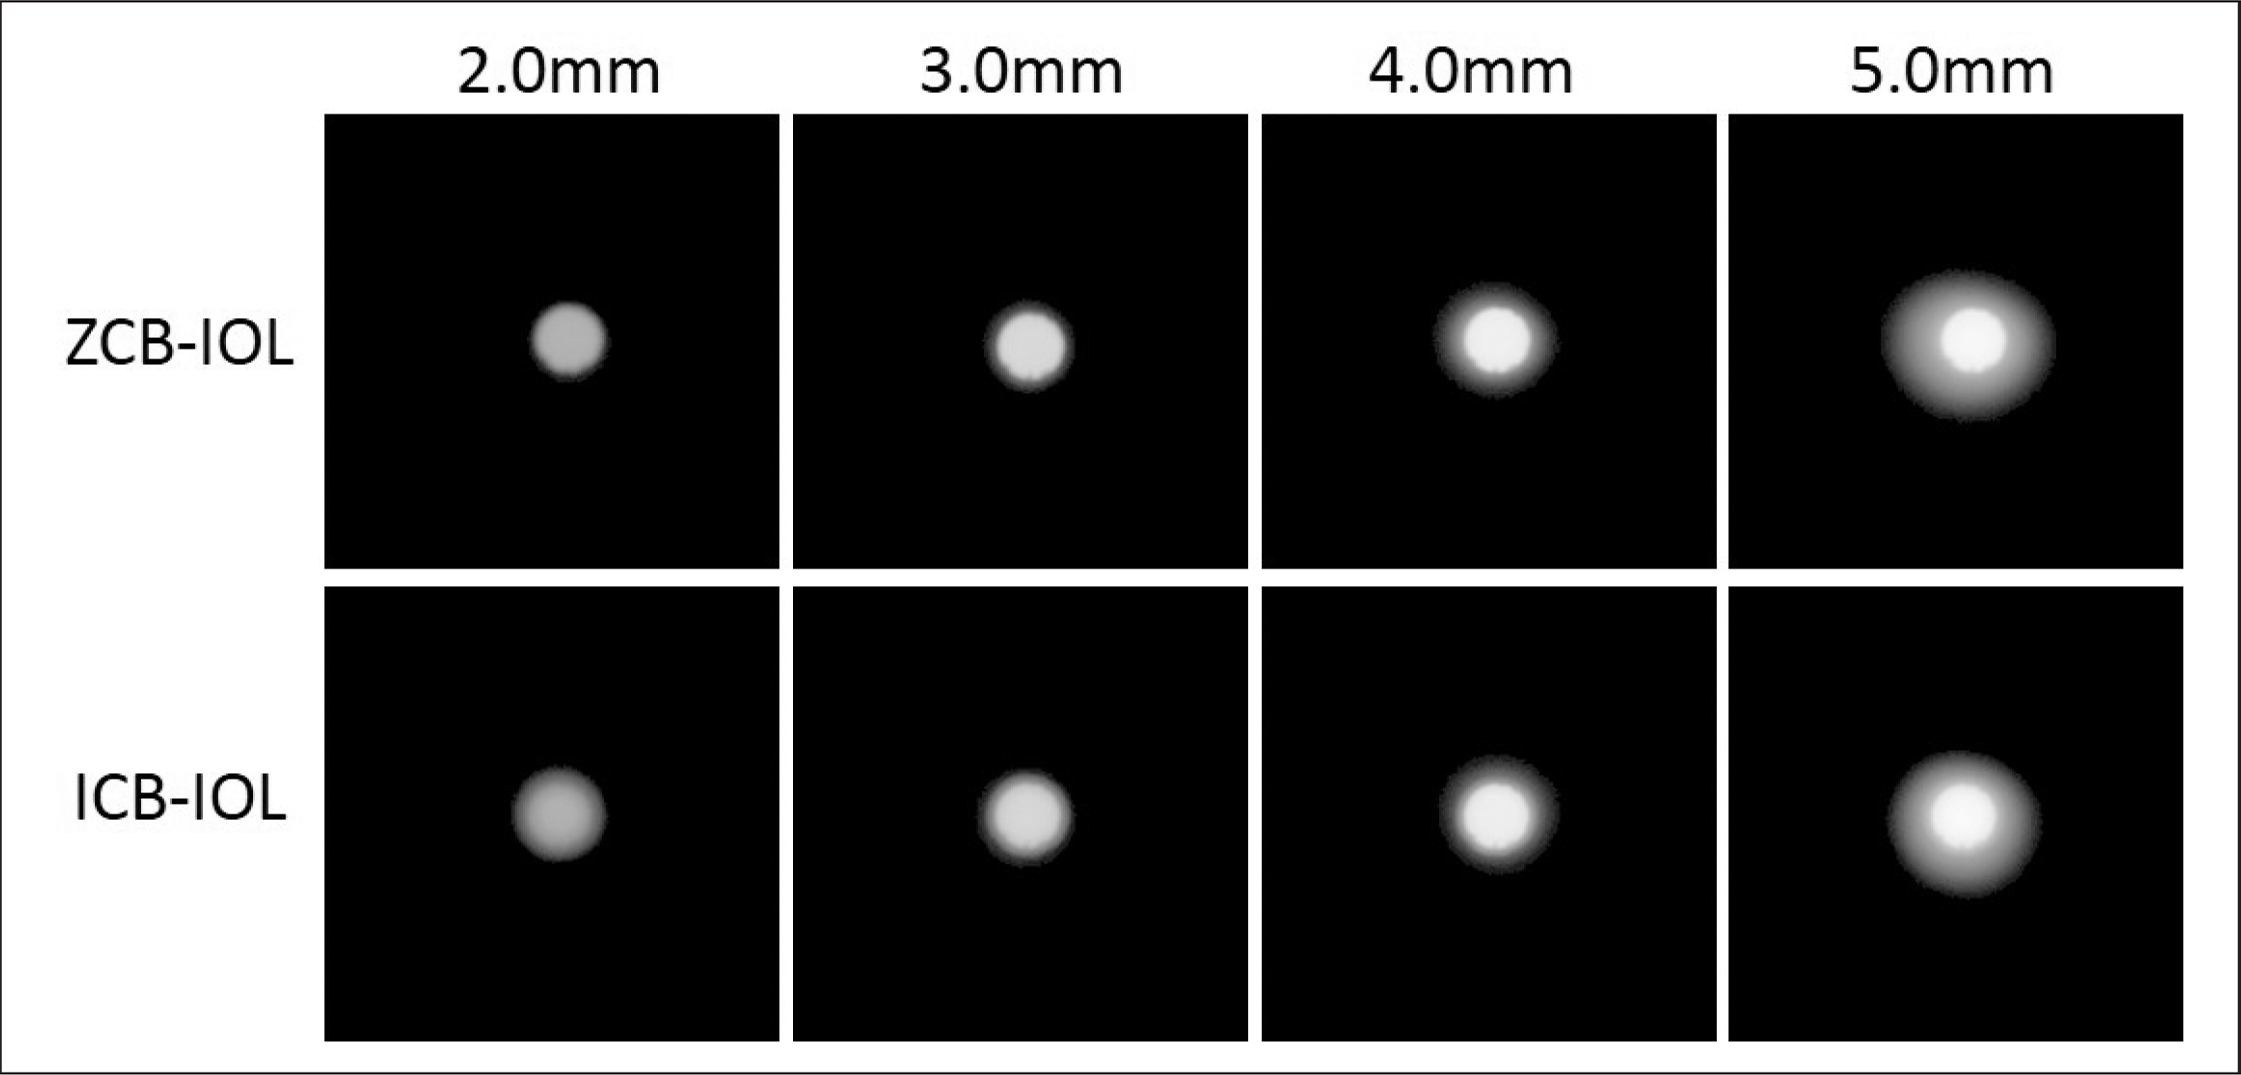 Images of the pinhole object formed by the model eye including either ZCB-IOL or ICB-IOL (Johnson & Johnson Vision, Inc) at their best focus for increasing pupil sizes. The images are displayed in logarithmic scale of intensity.